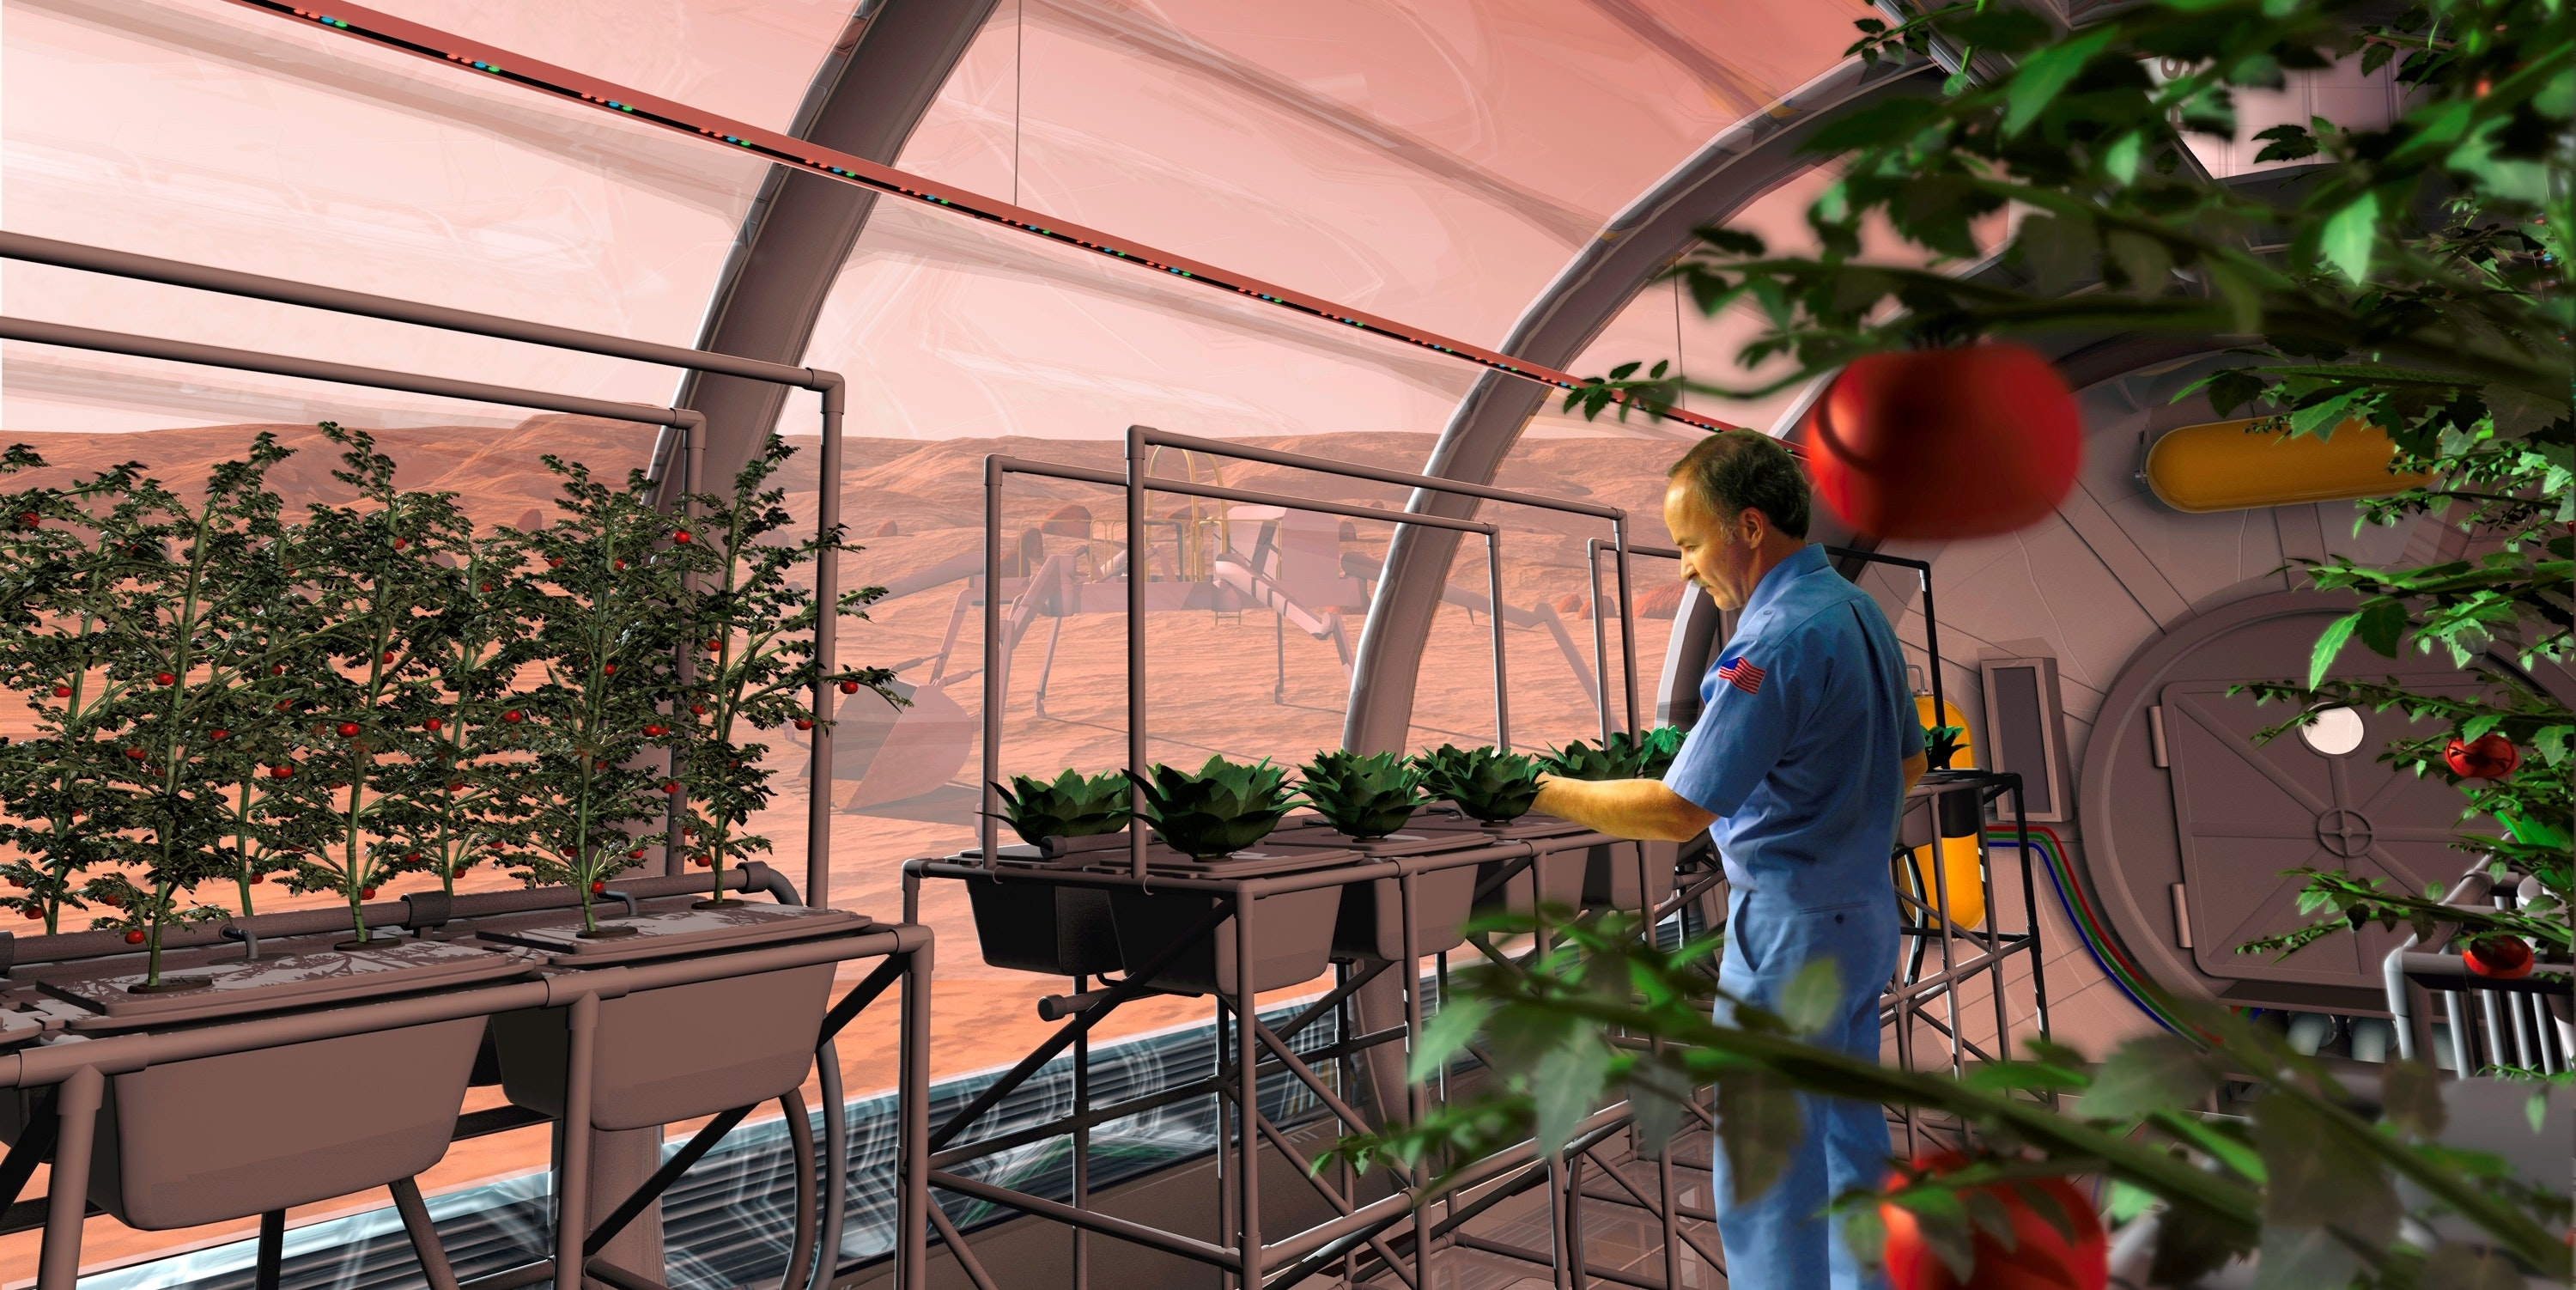 Artist's rendering of an astronaut in a Mars greenhouse.